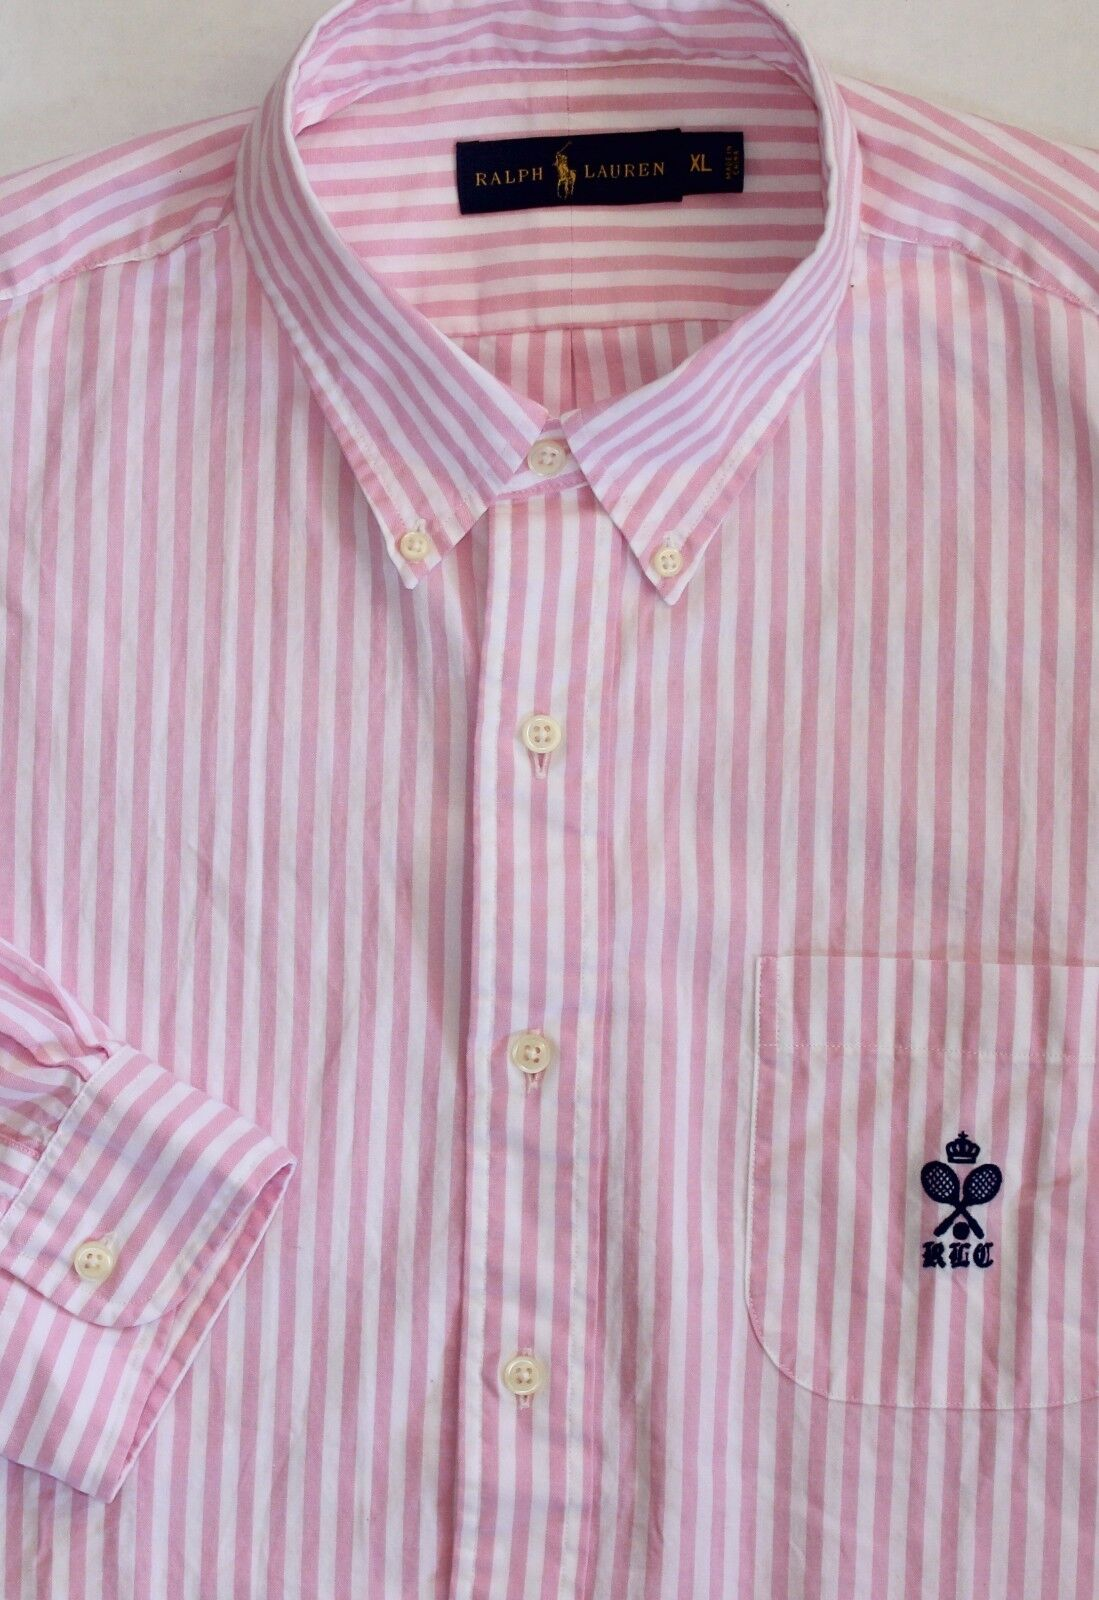 New Polo Ralph Lauren Long Sleeve Pink   White Striped Cotton Shirt   XL